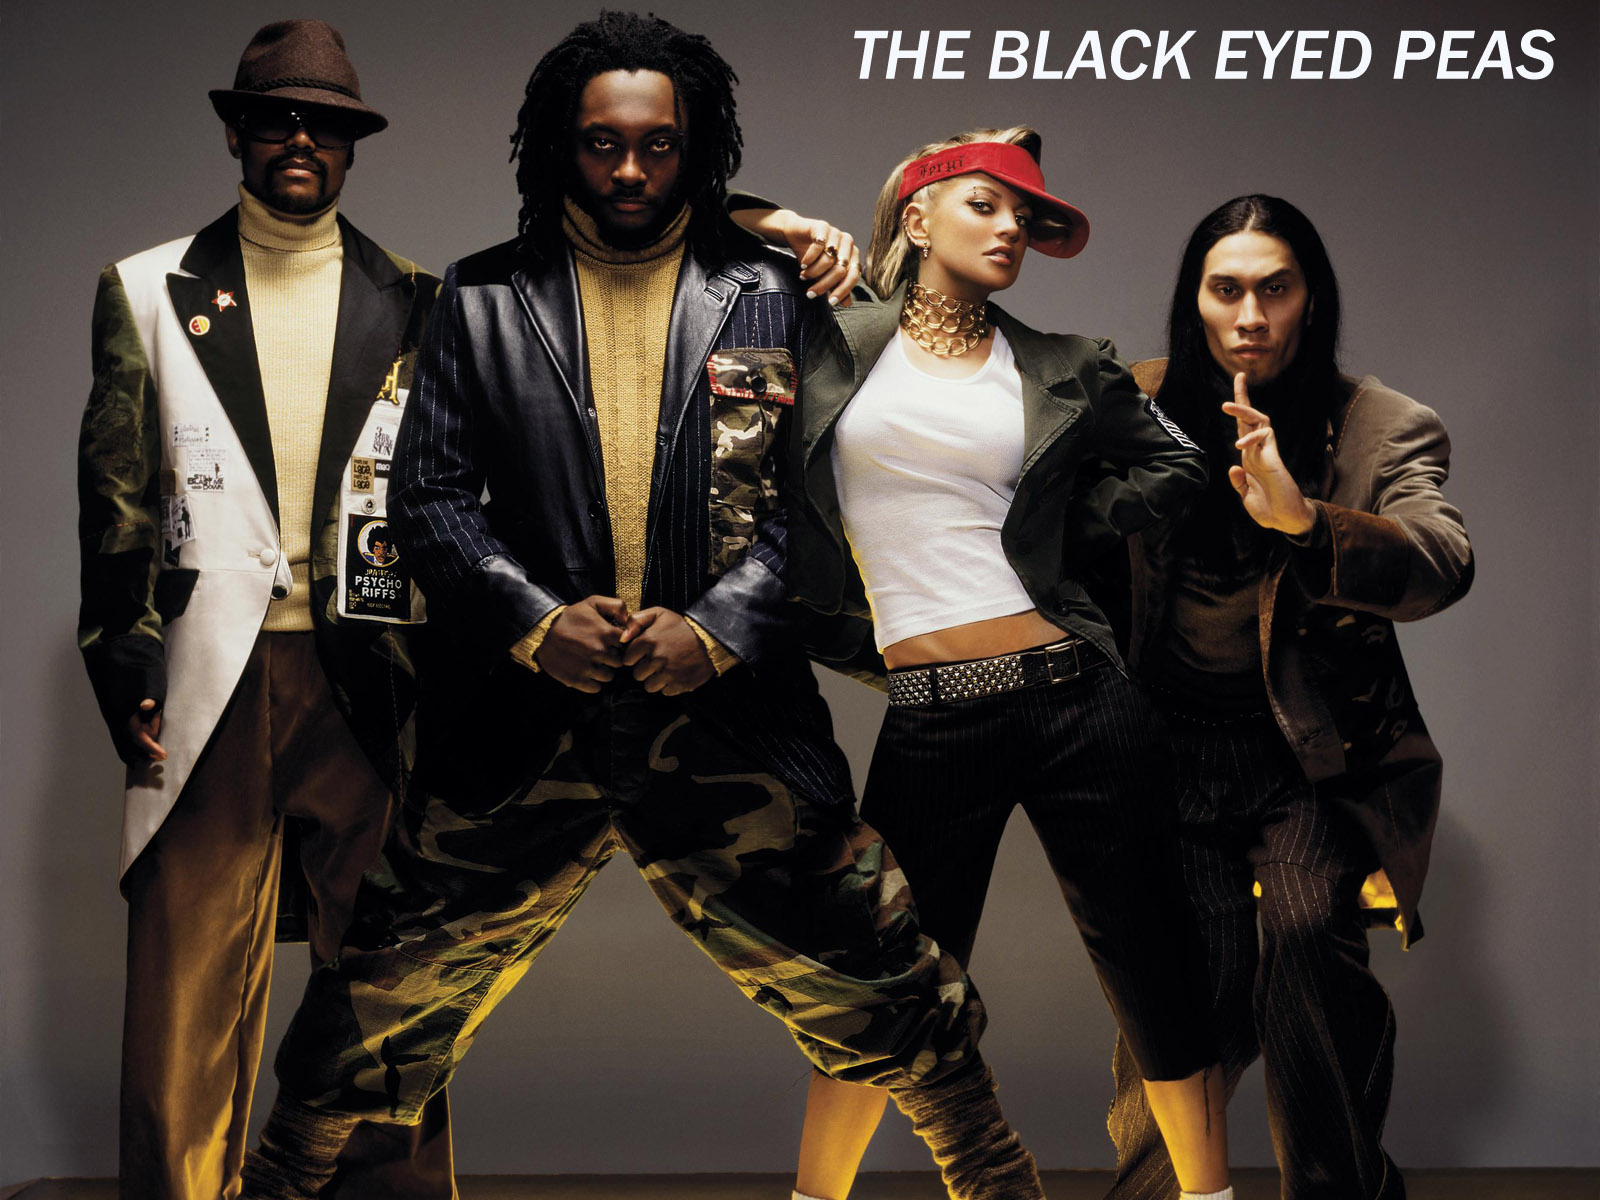 The Black Eyed Peas Wallpaper